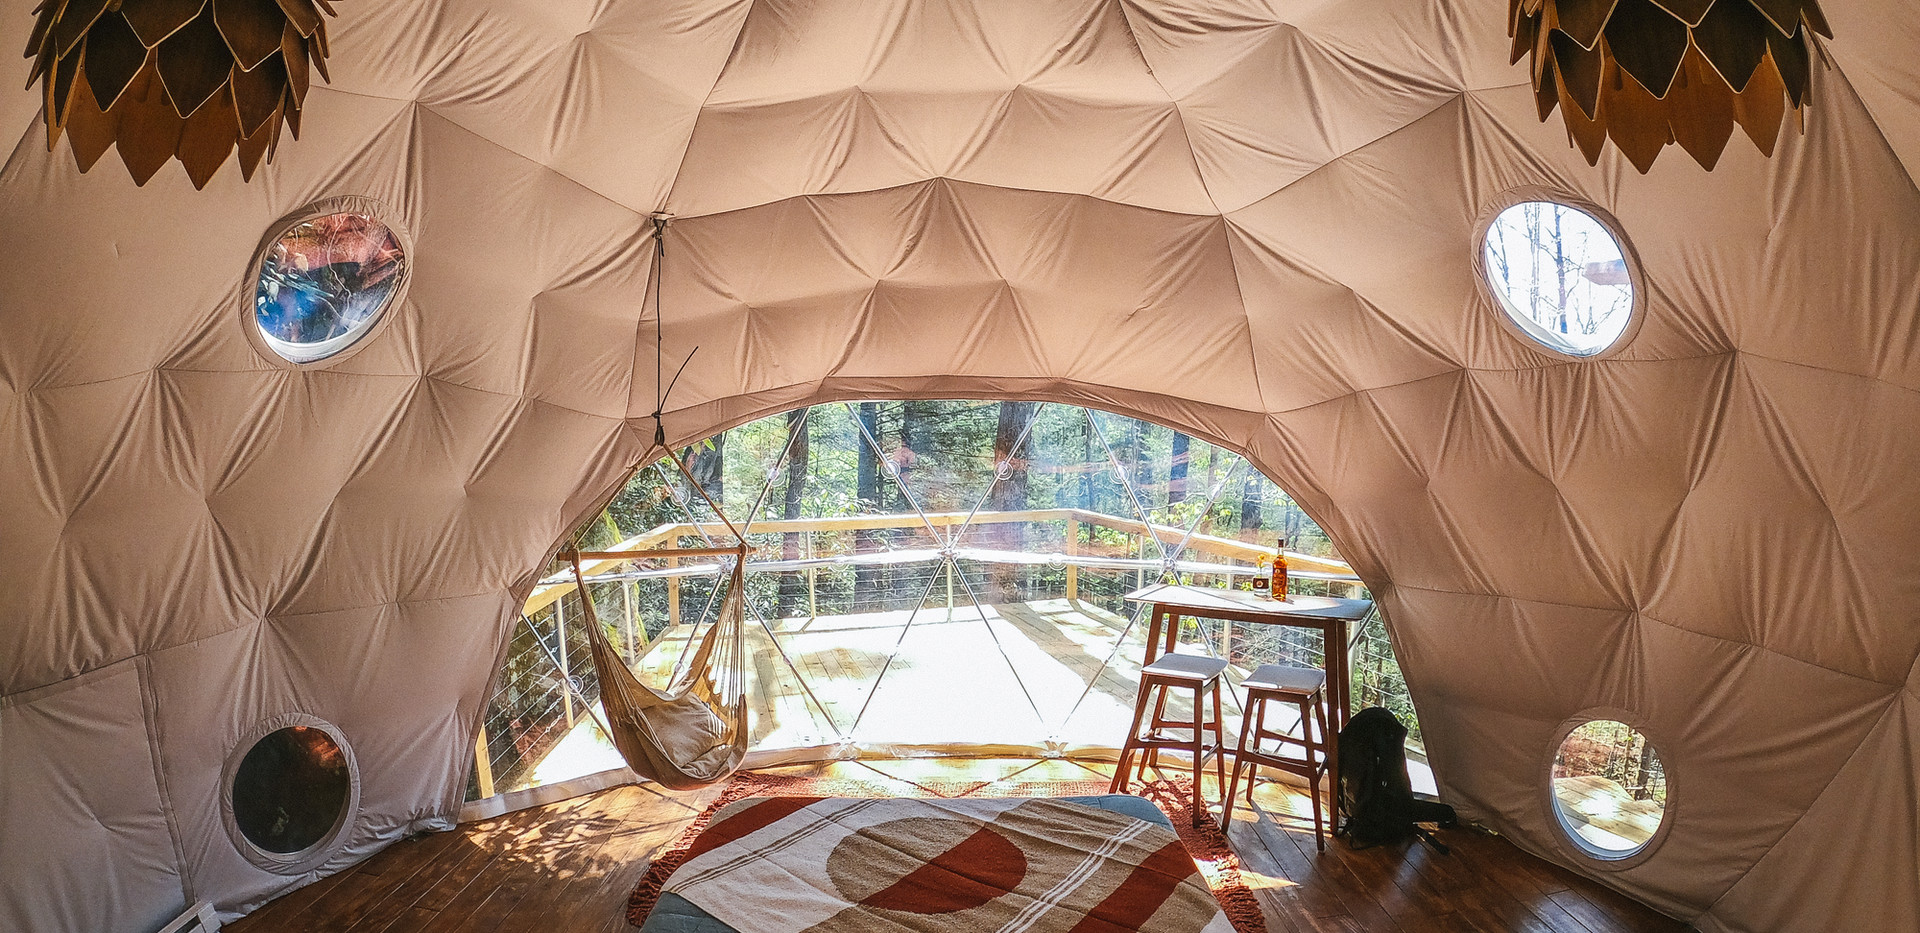 1_Dome Town_Bedroom.jpg